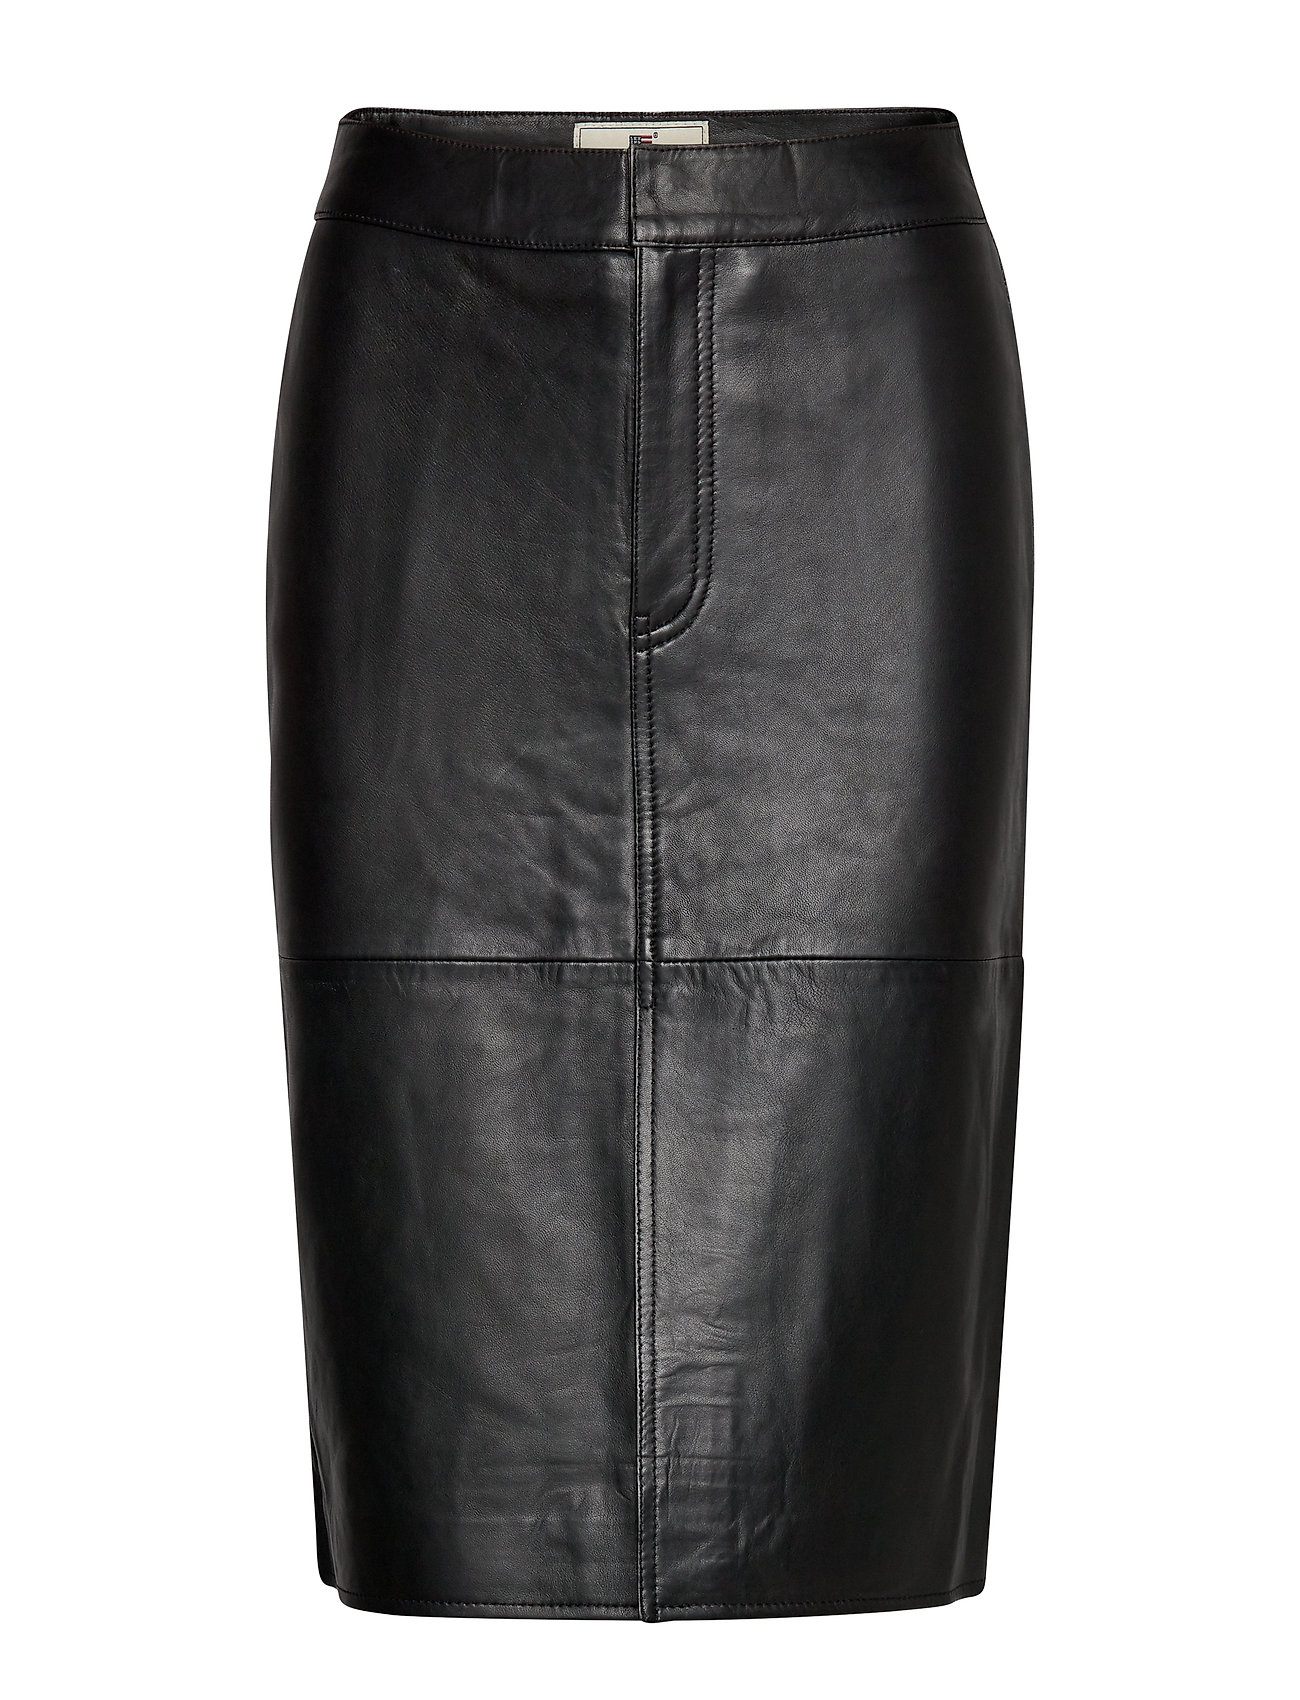 Lexington Clothing Millie Leather Skirt - BLACK